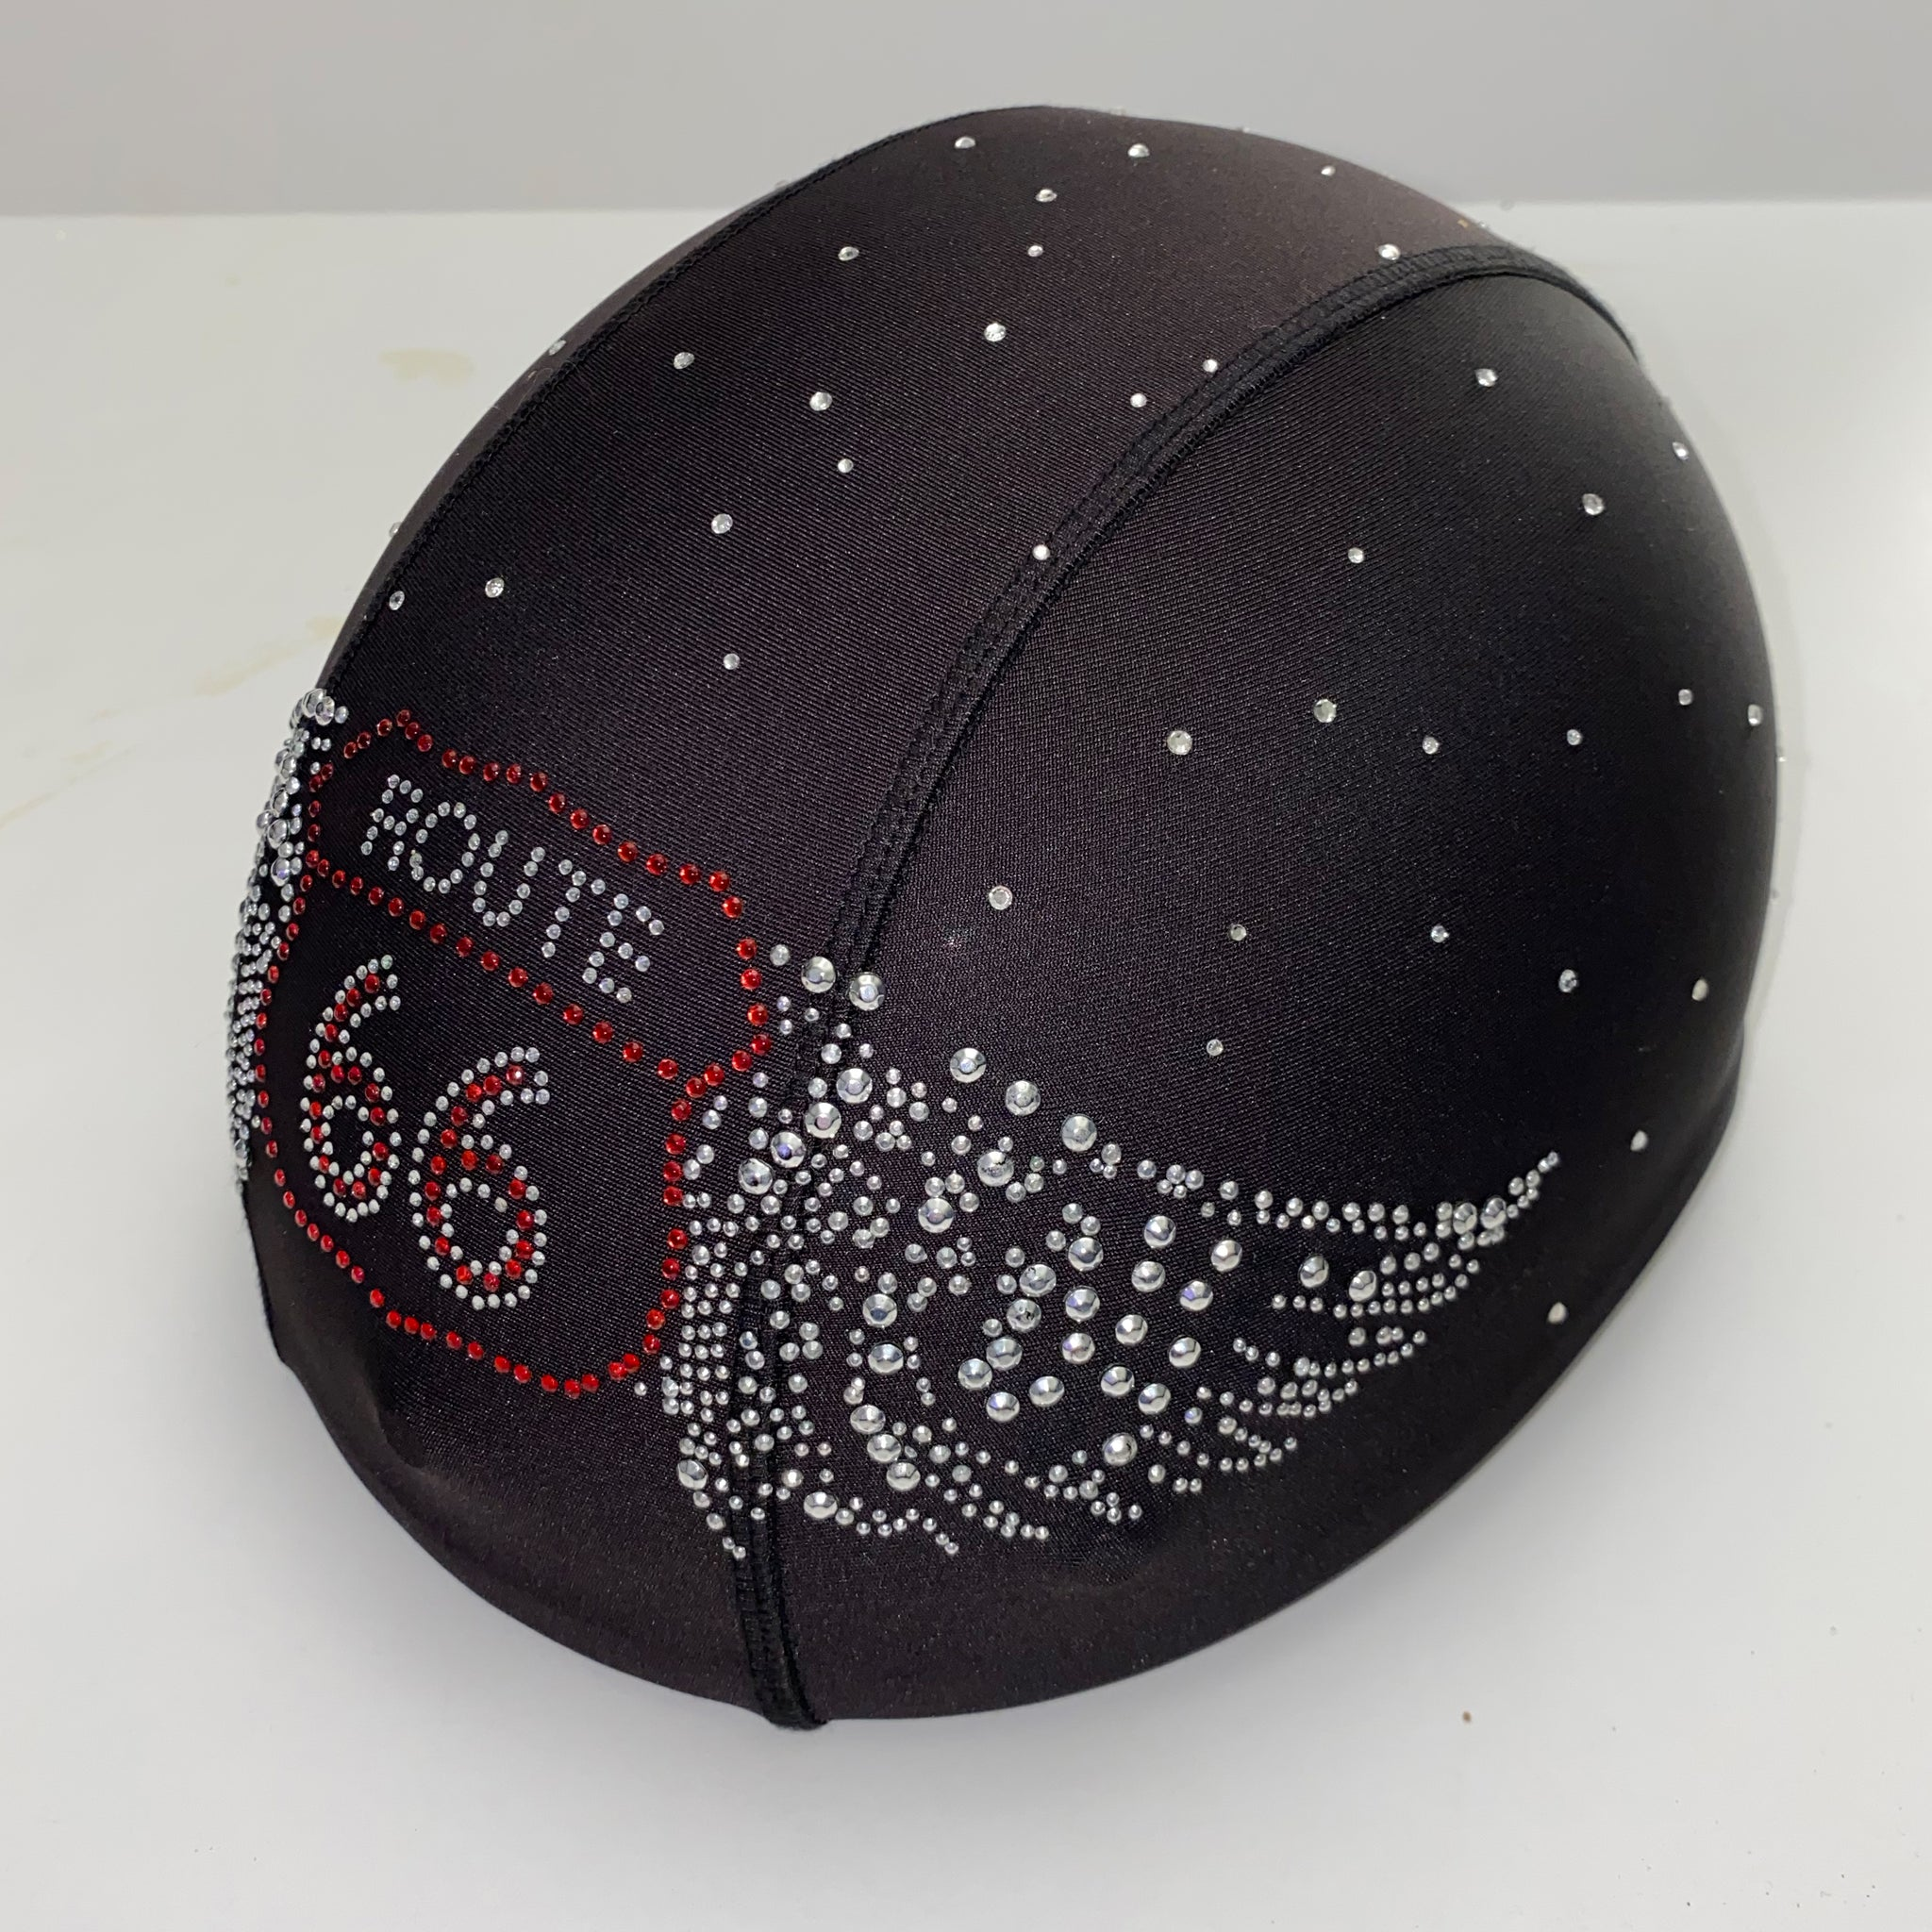 Route 66 custom helmet cover